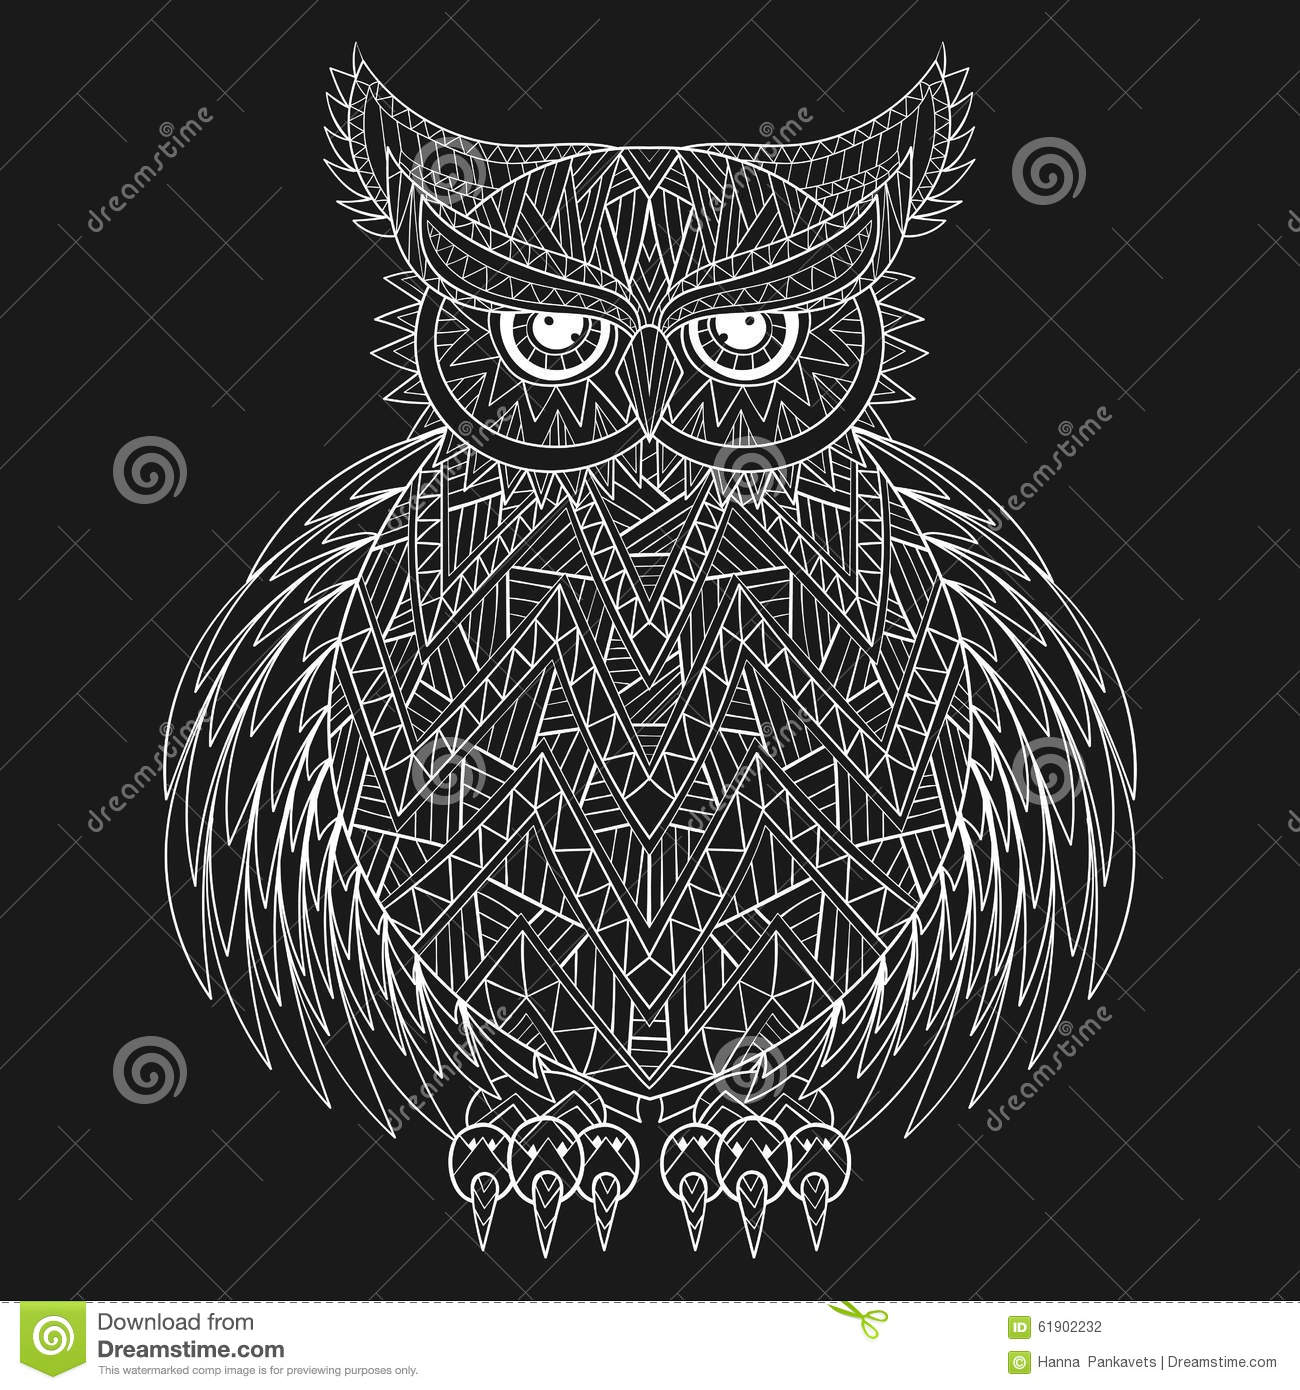 Hand Drawn Zentangle Owl Bird Totem For Adult Coloring